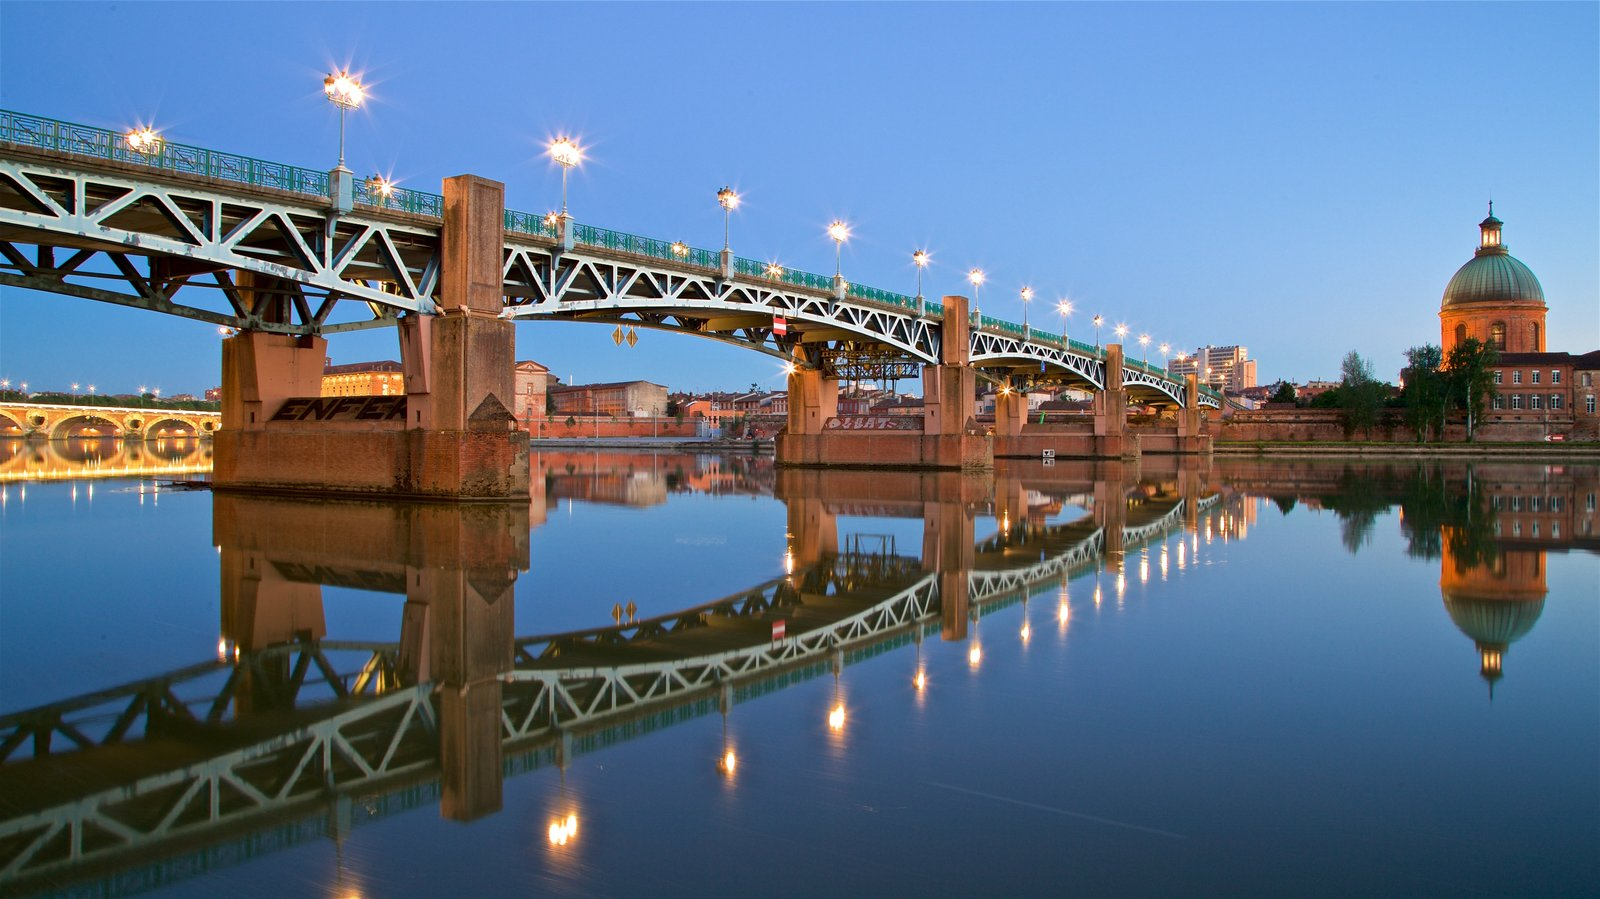 Garonne which includes heritage architecture, a river or creek and night scenes